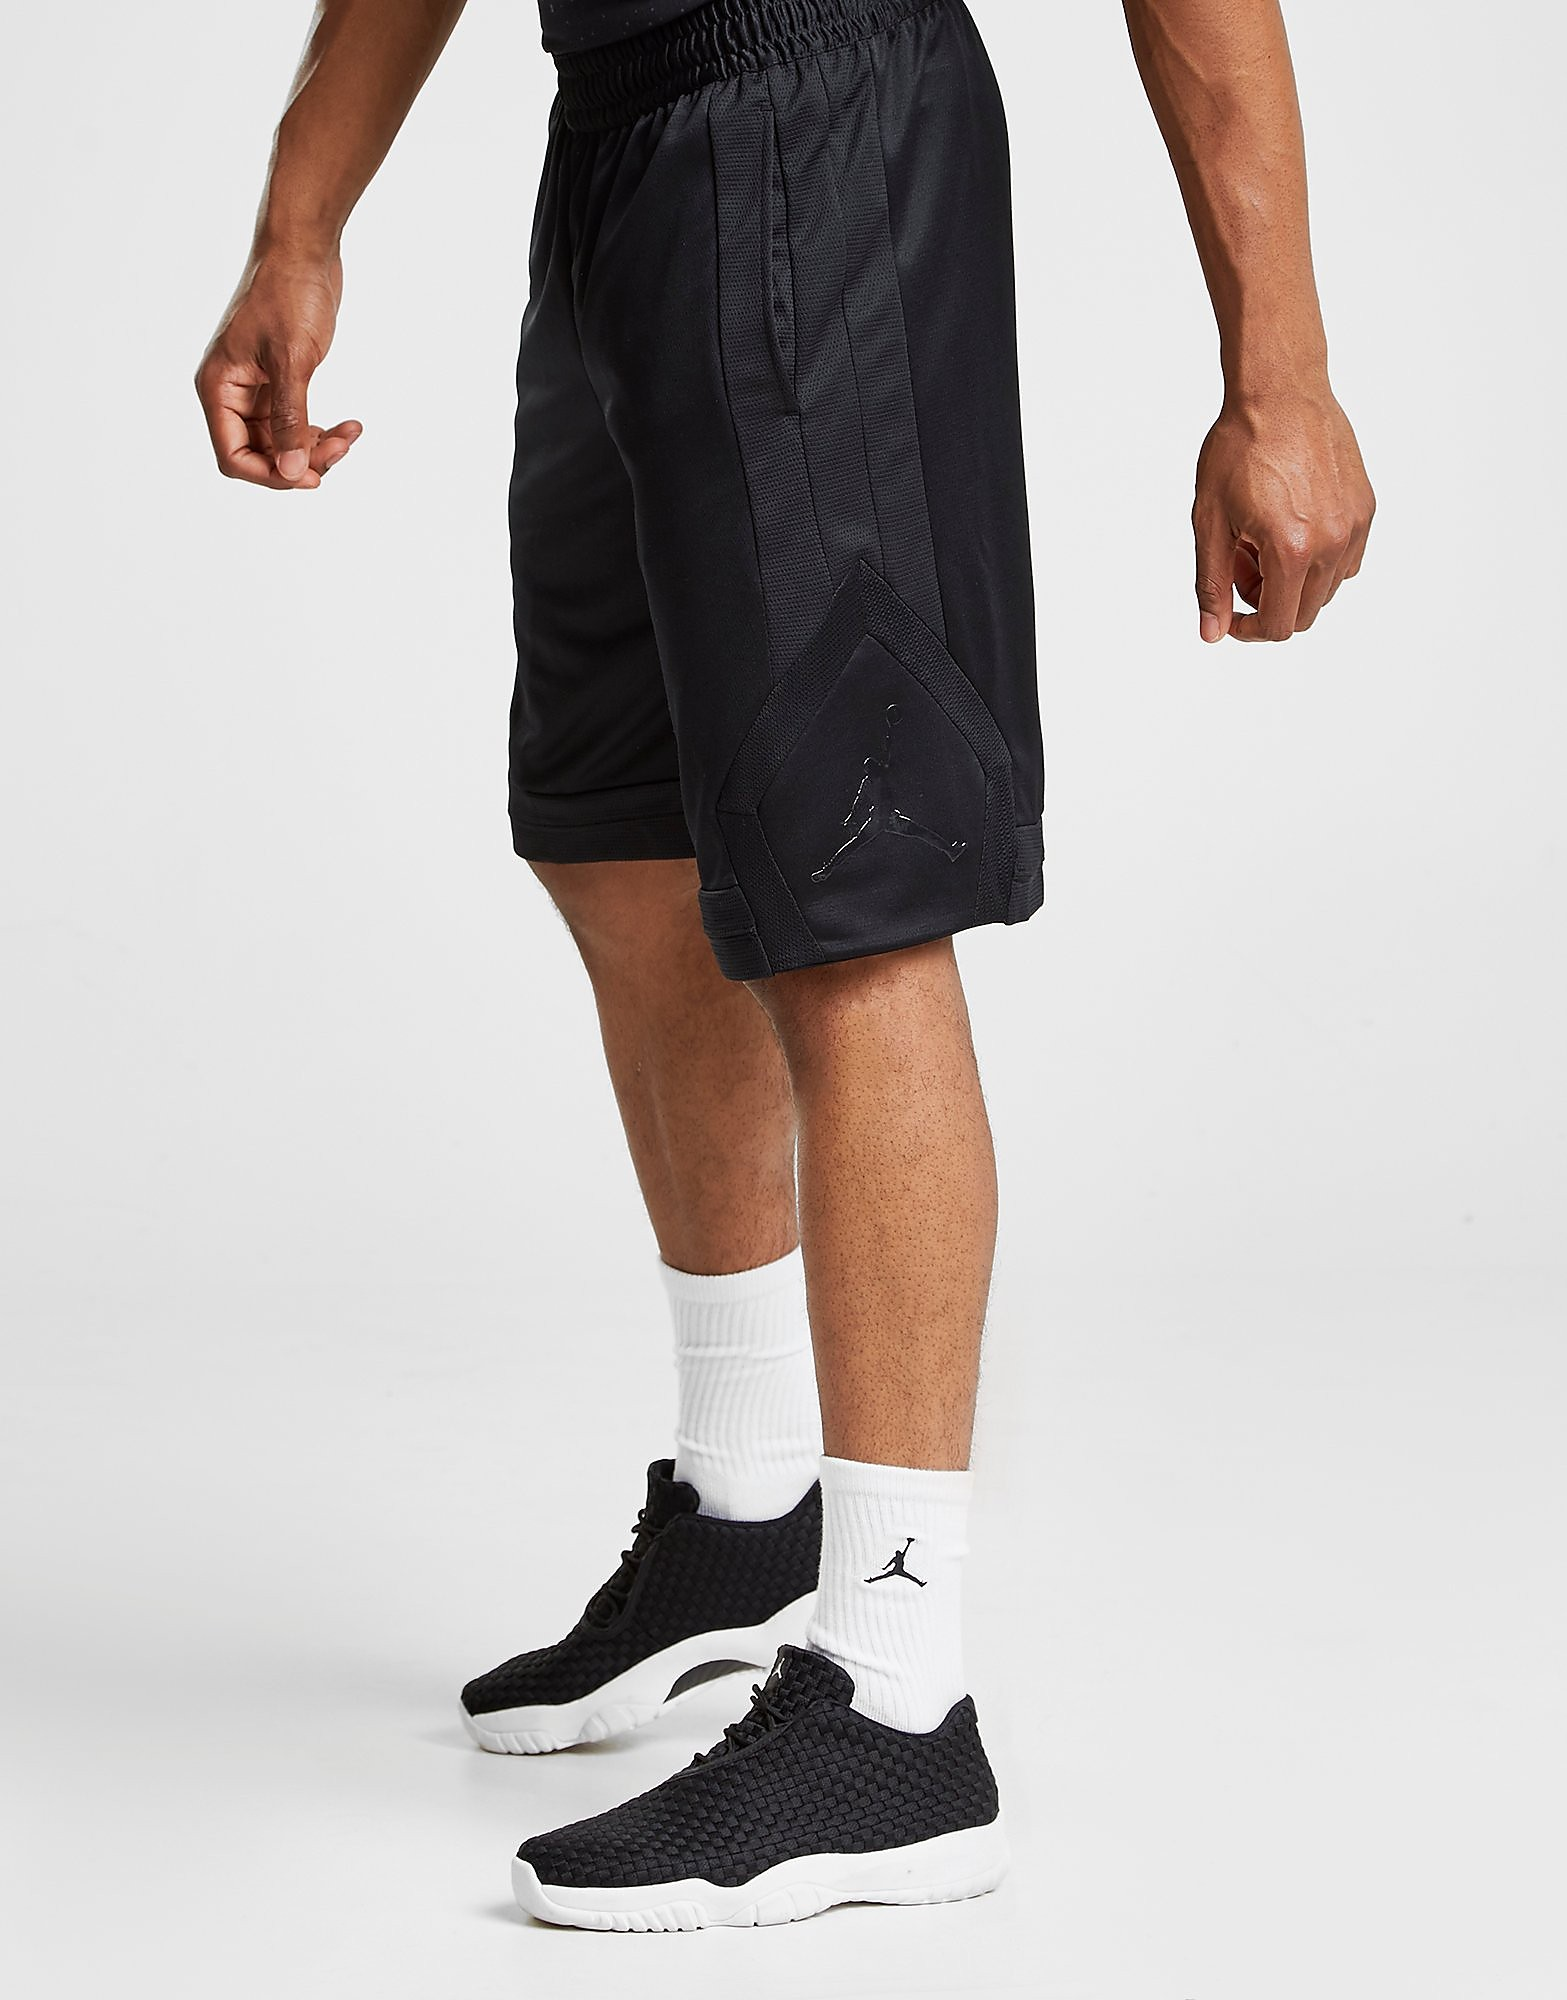 Sale Jordan Shorts Men Jd Sports